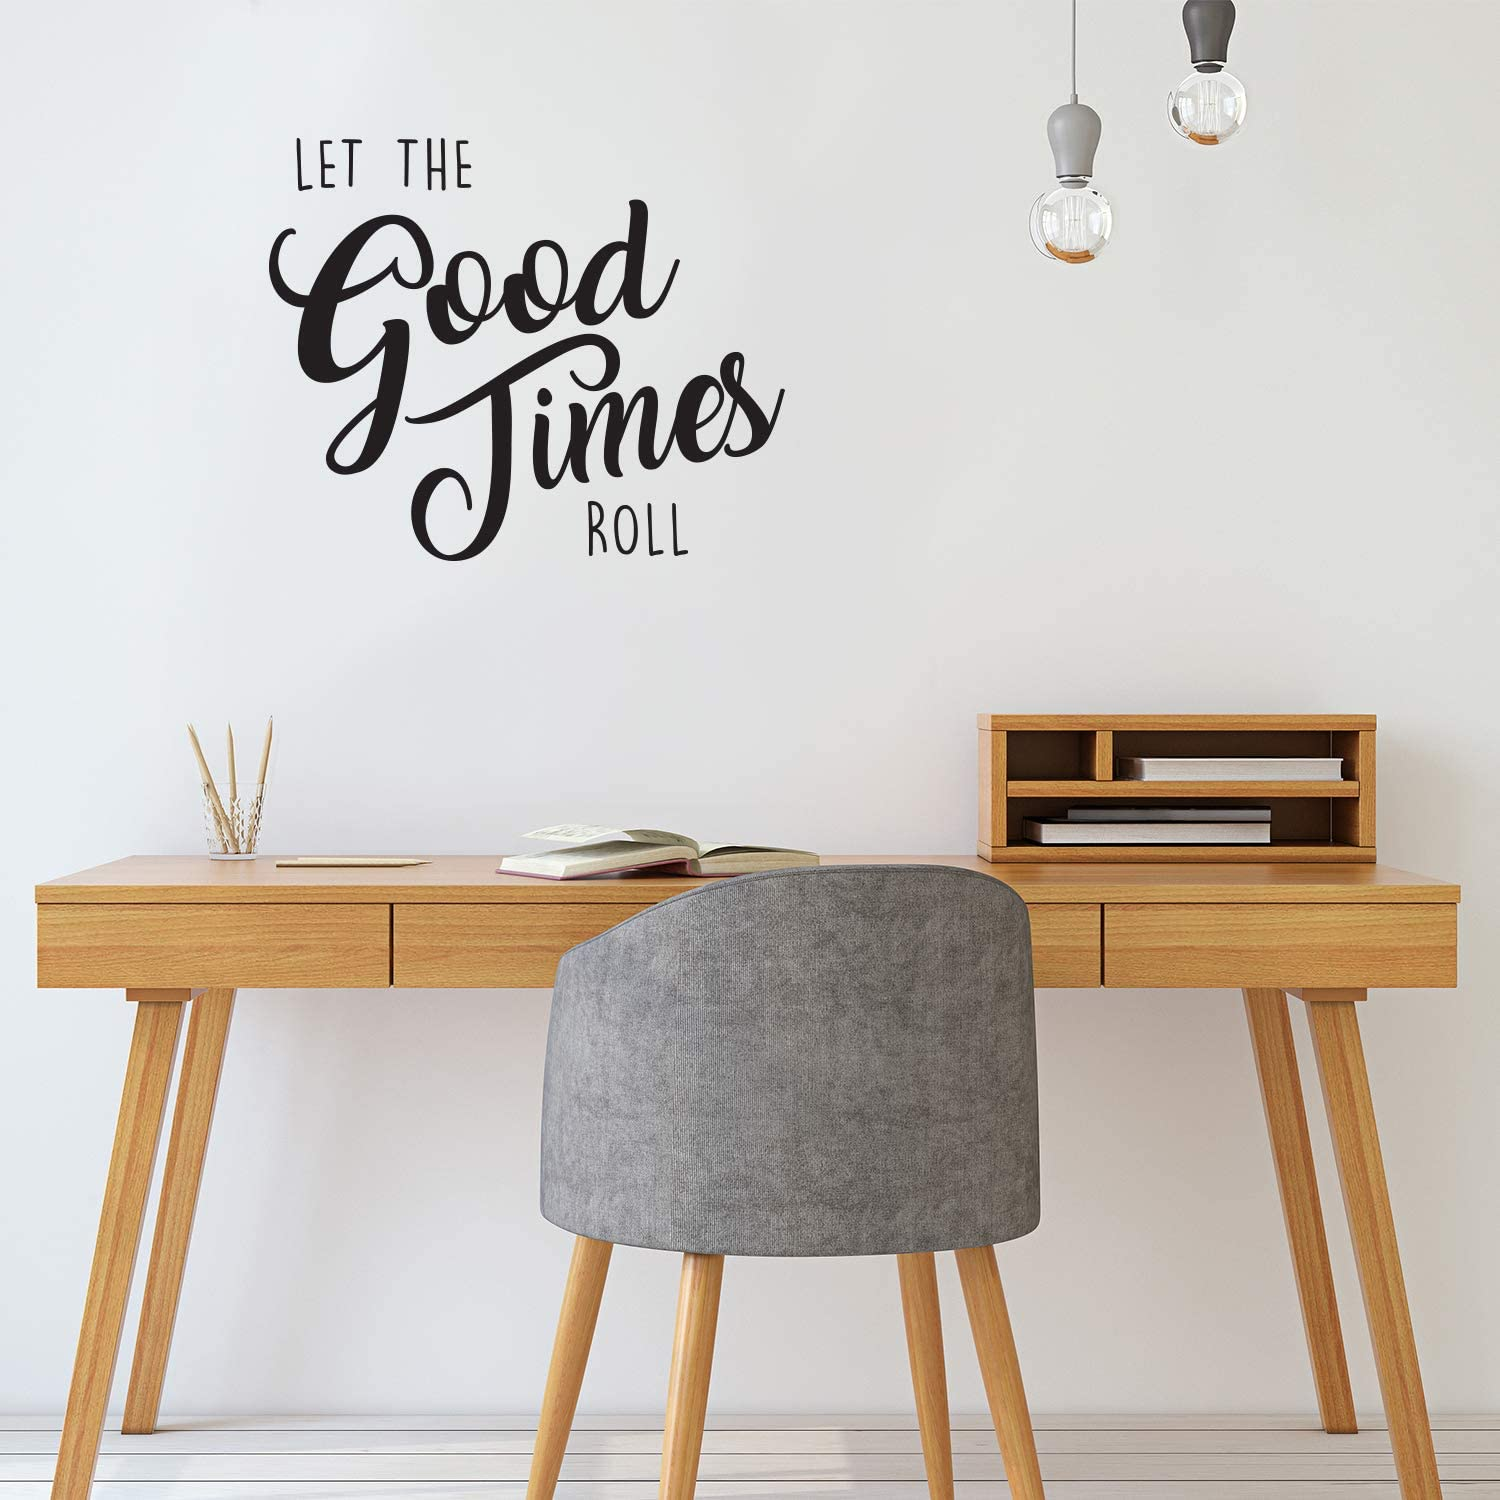 """Inspirational Life Quotes Wall Art Vinyl Decal - Let The Good Times Roll - 22"""" X 26"""" Decoration Vinyl Sticker - Motivational Wall Art Decal - Positive Quote Trendy Wall Art Living Room Decor"""